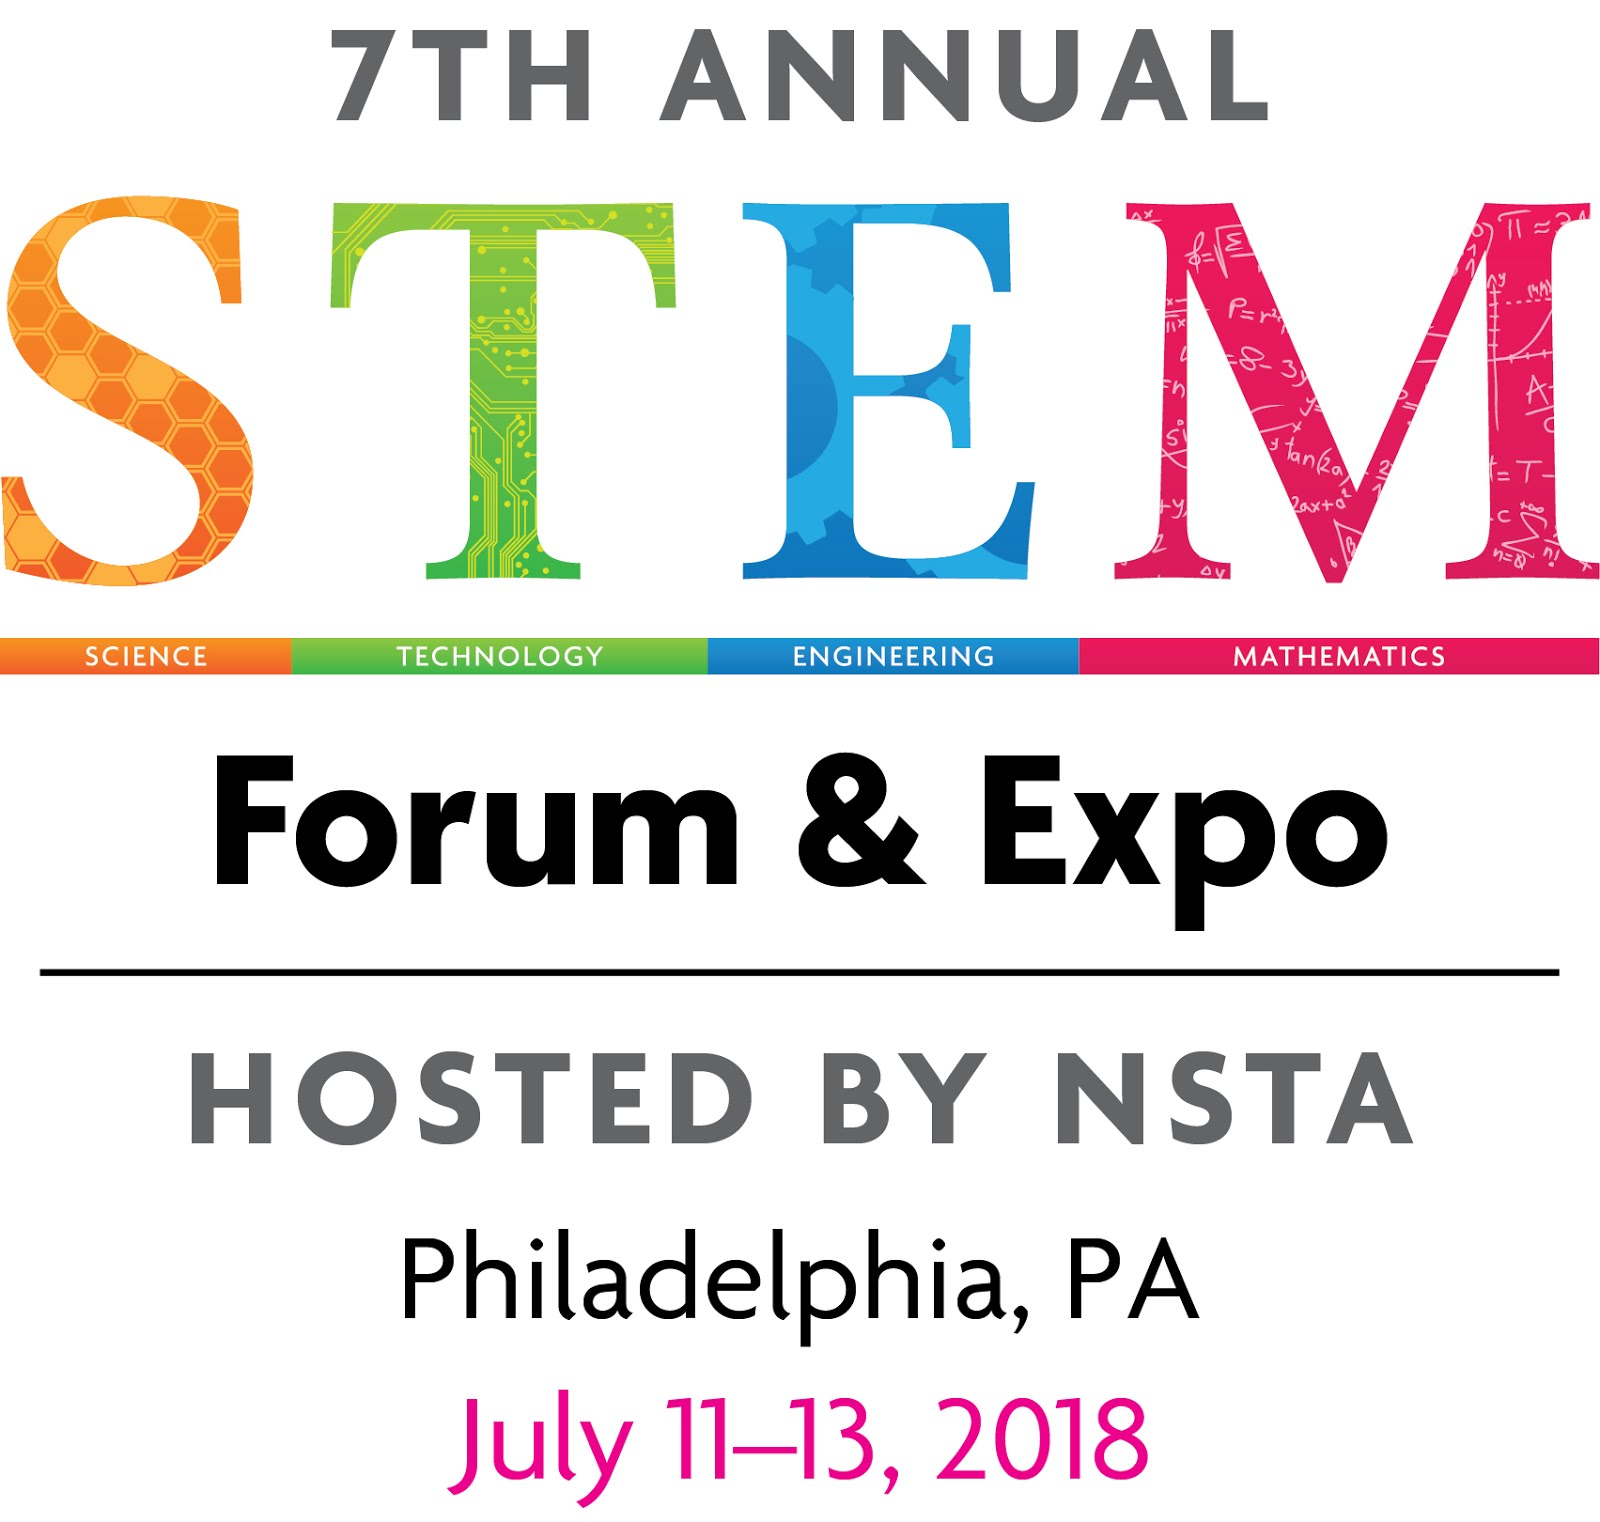 I'm presenting at the NSTA STEM Forum in Philadelphia